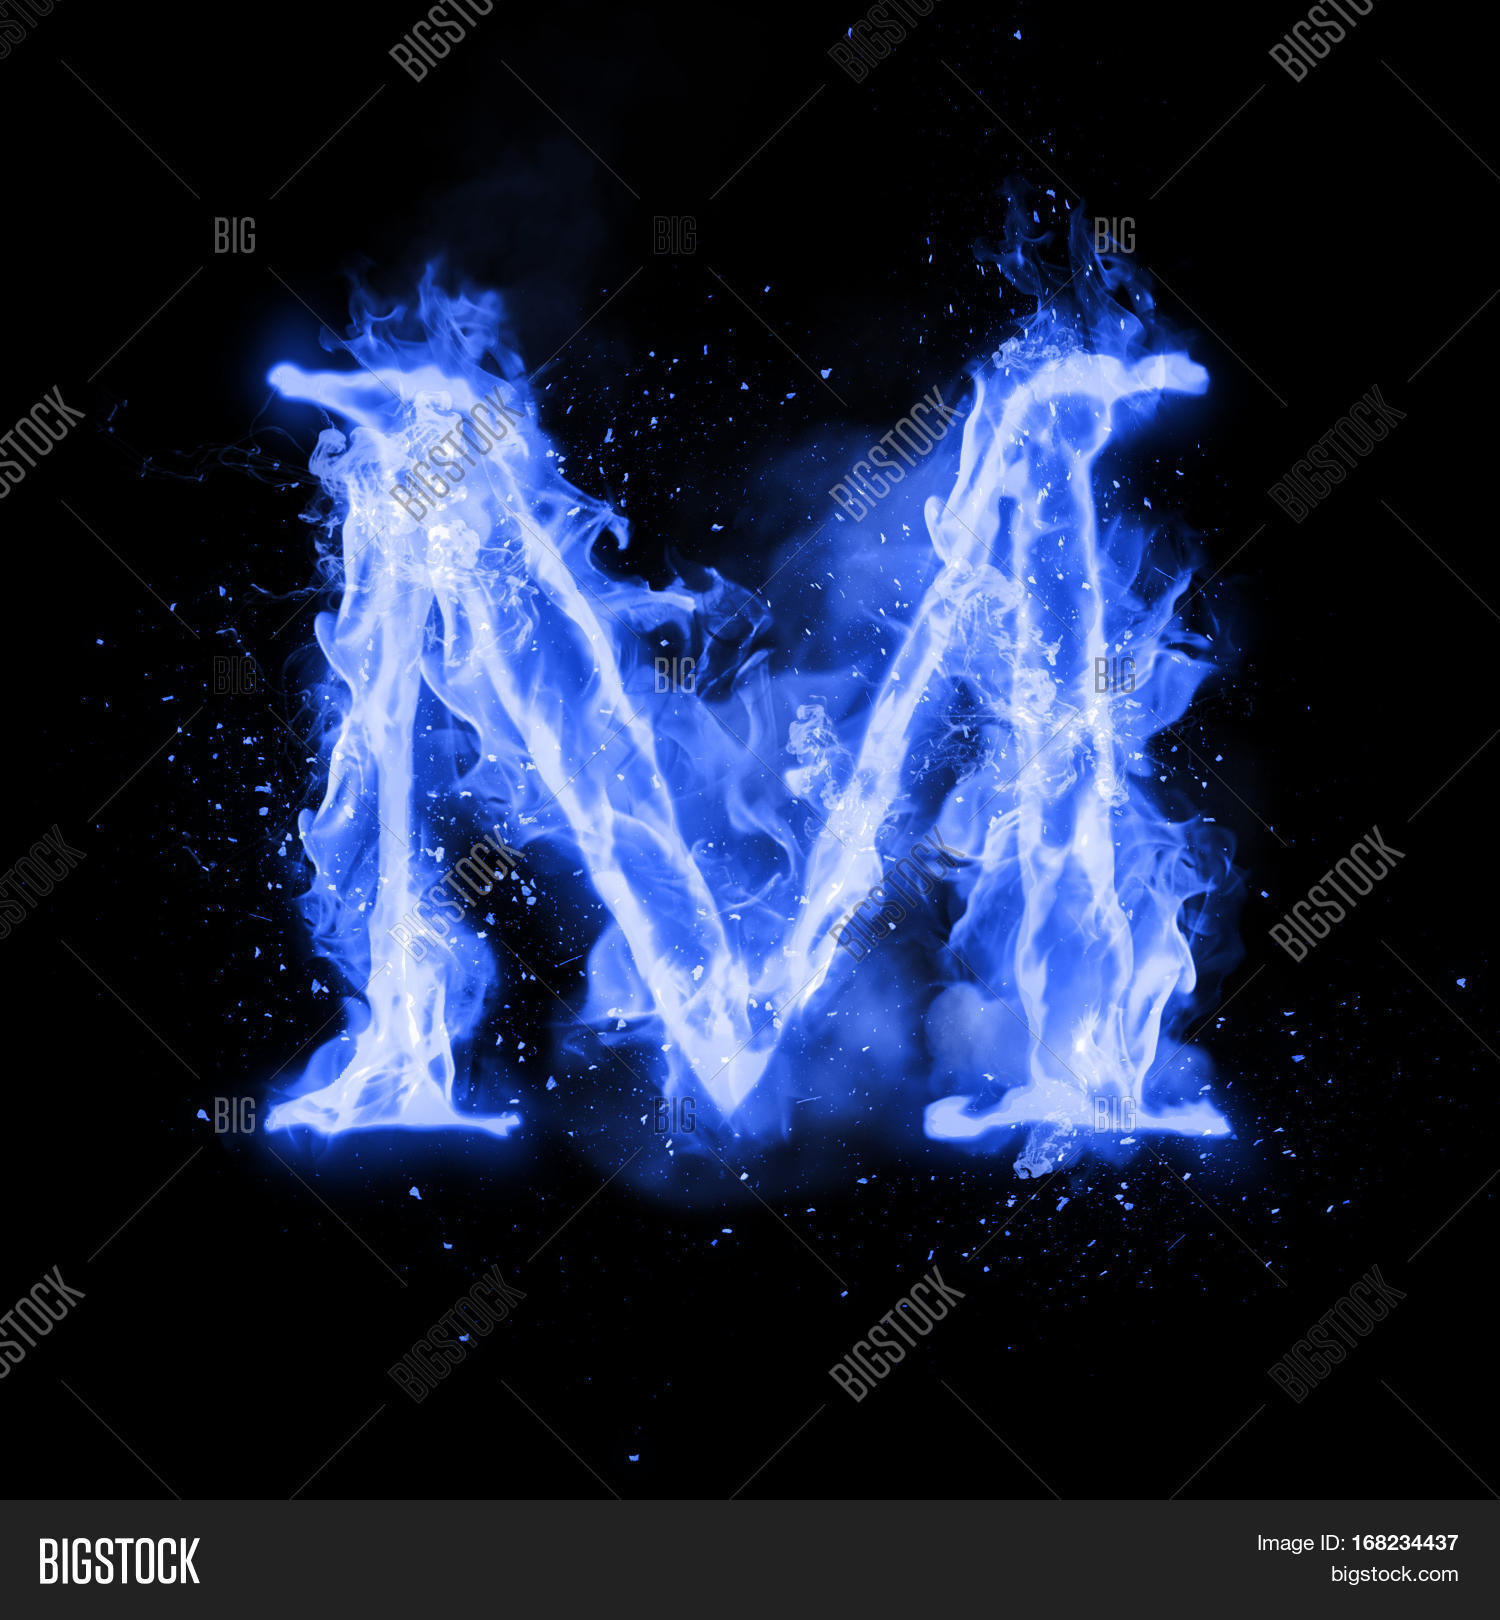 Fire Letter M Burning Blue Flame. Image & Photo | Bigstock